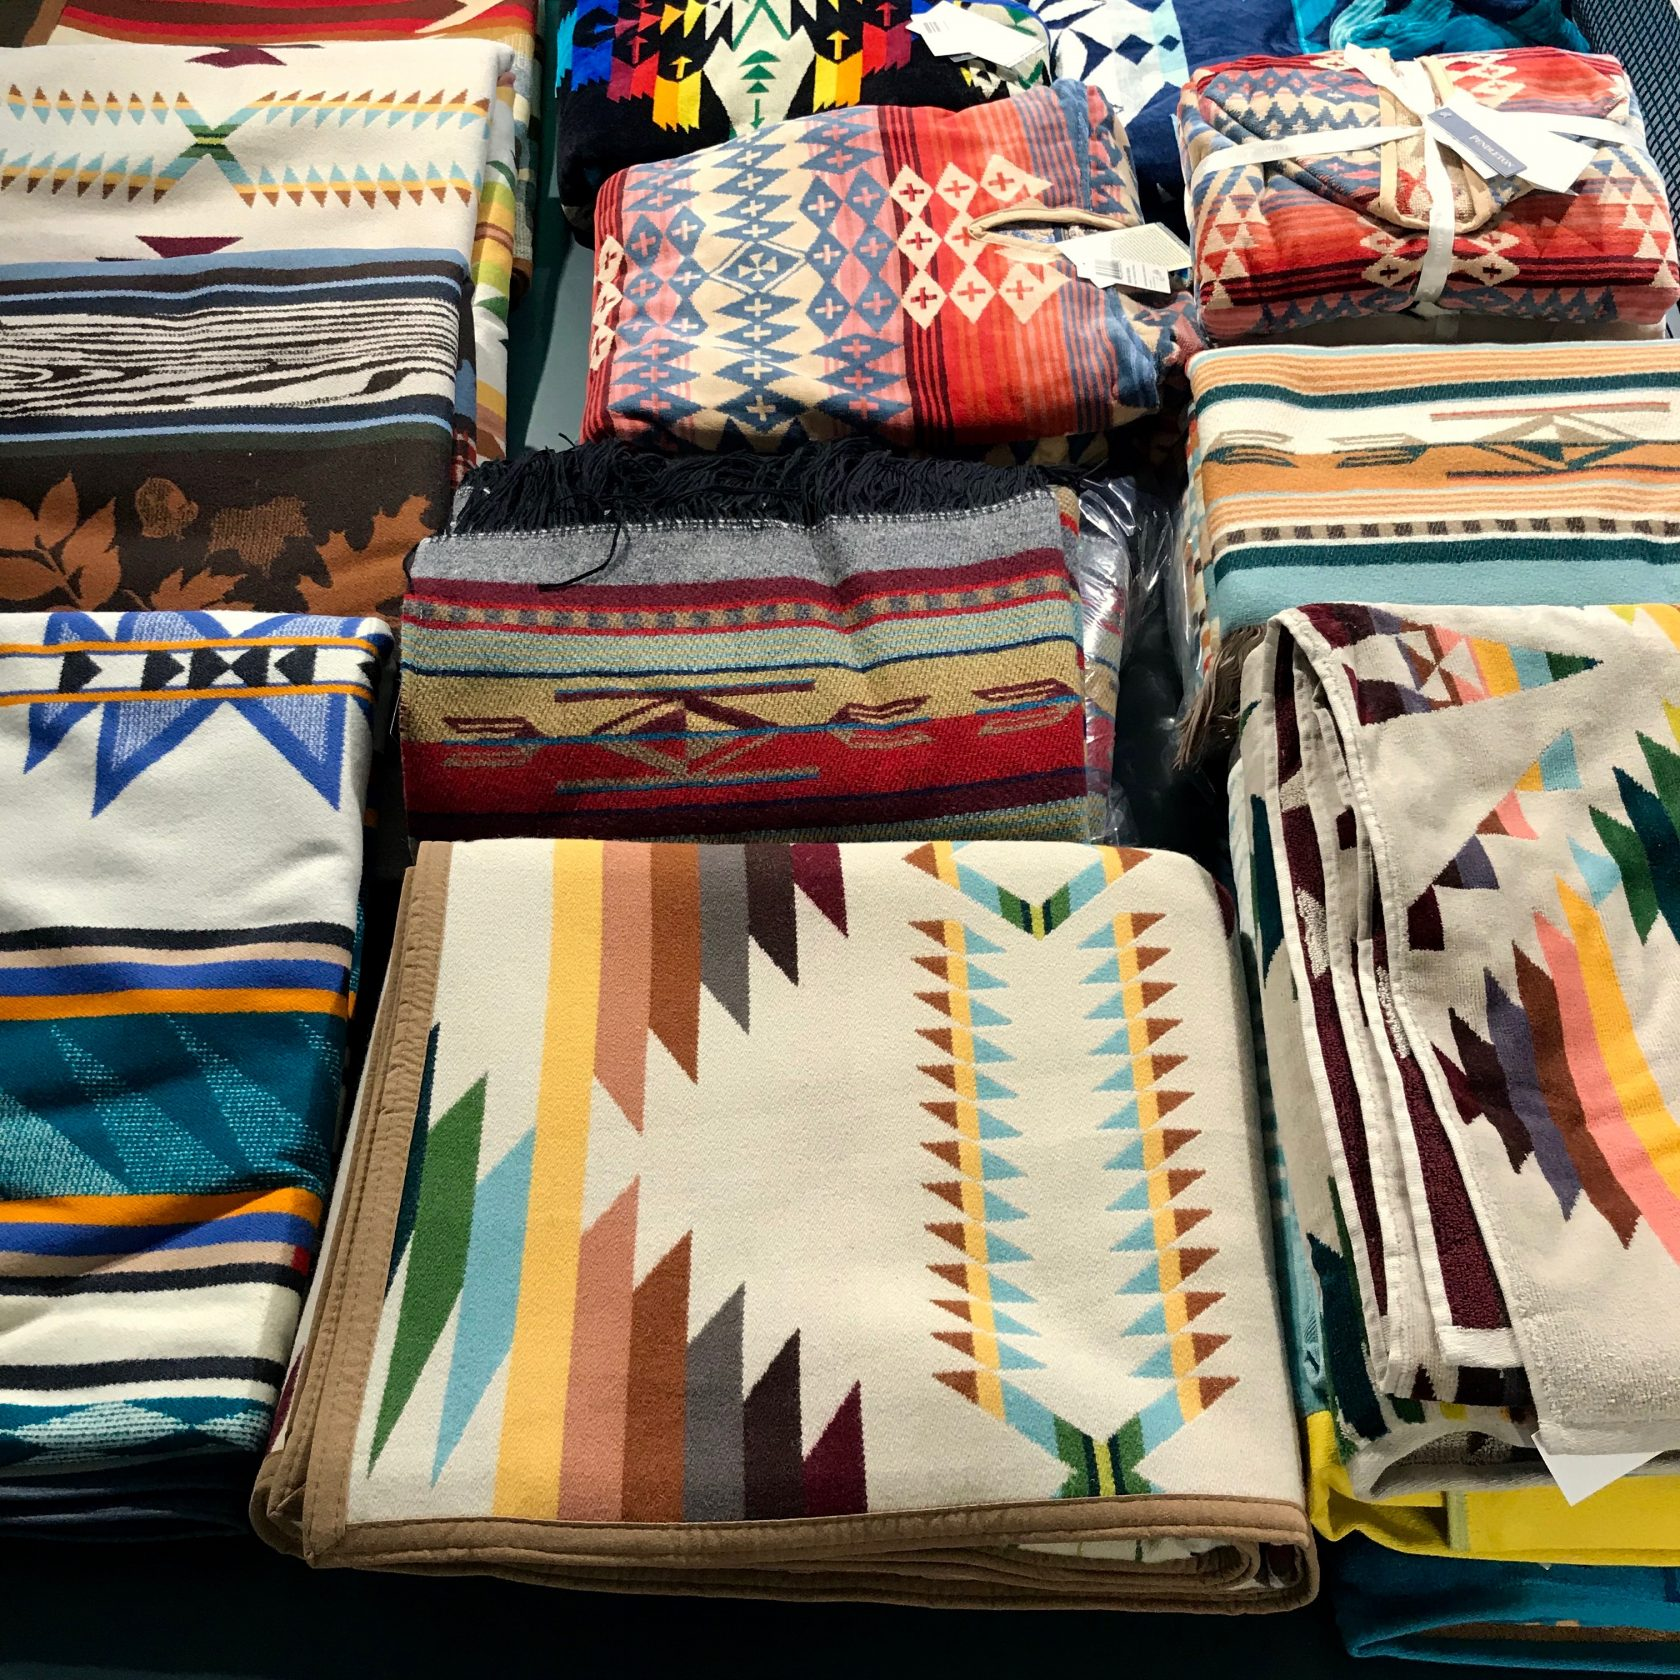 Pendleton blankets and towels